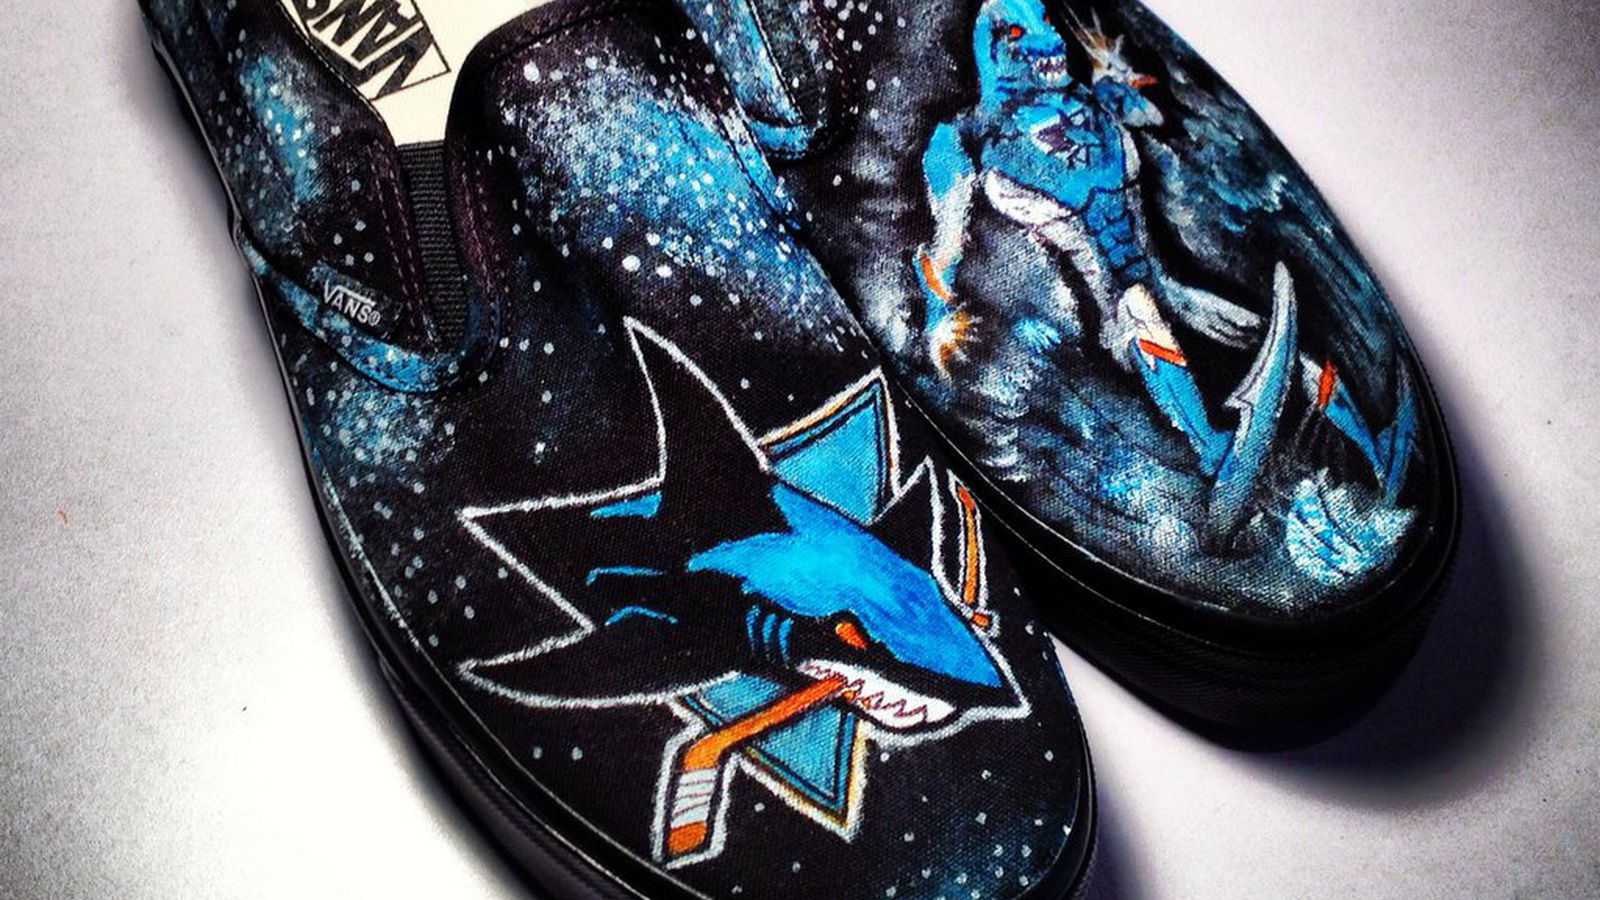 San_jose_sharks_shoes_by_brentnunn-d7l9k7c.0.0